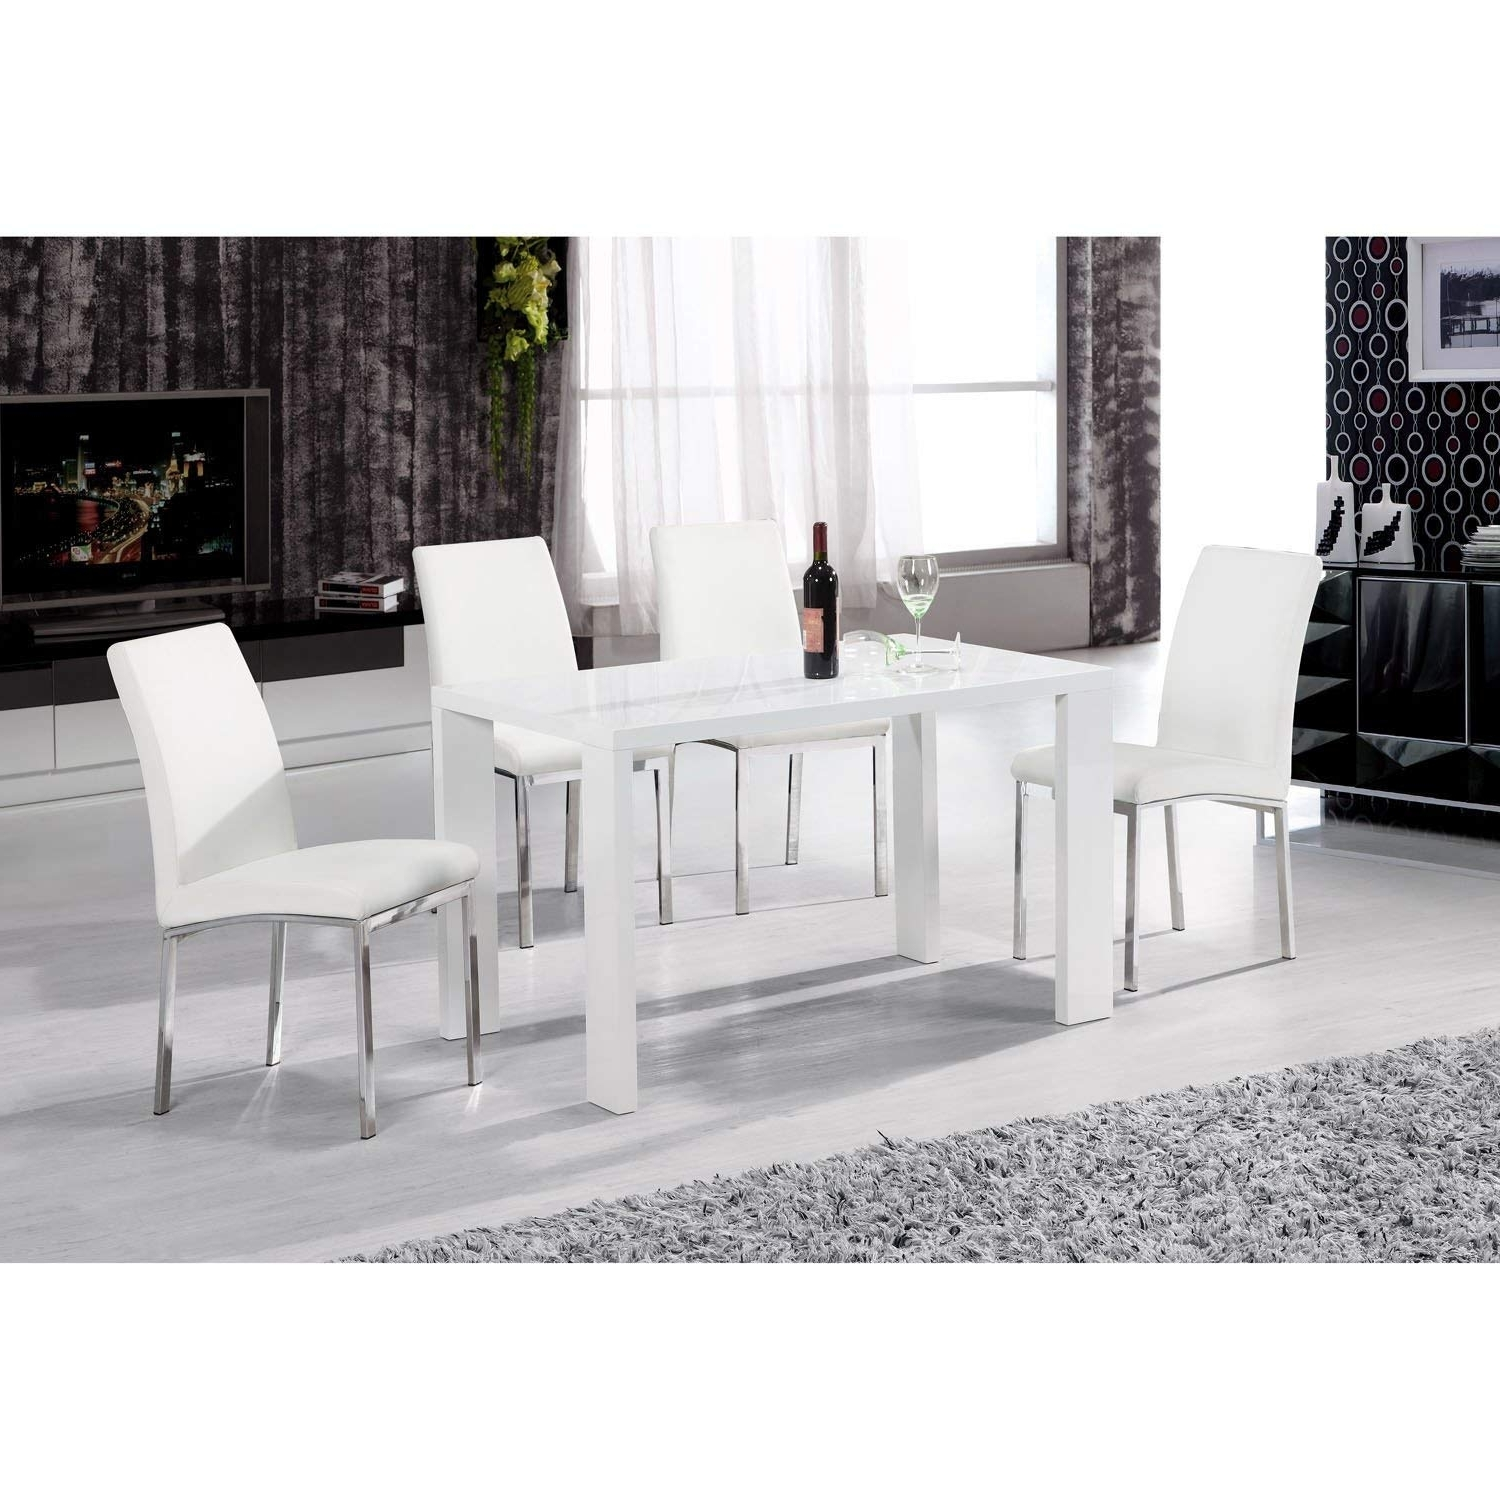 Most Recently Released Heartlands Peru White High Gloss 130Cm Dining Table In Wood Regarding Gloss White Dining Tables And Chairs (View 7 of 25)